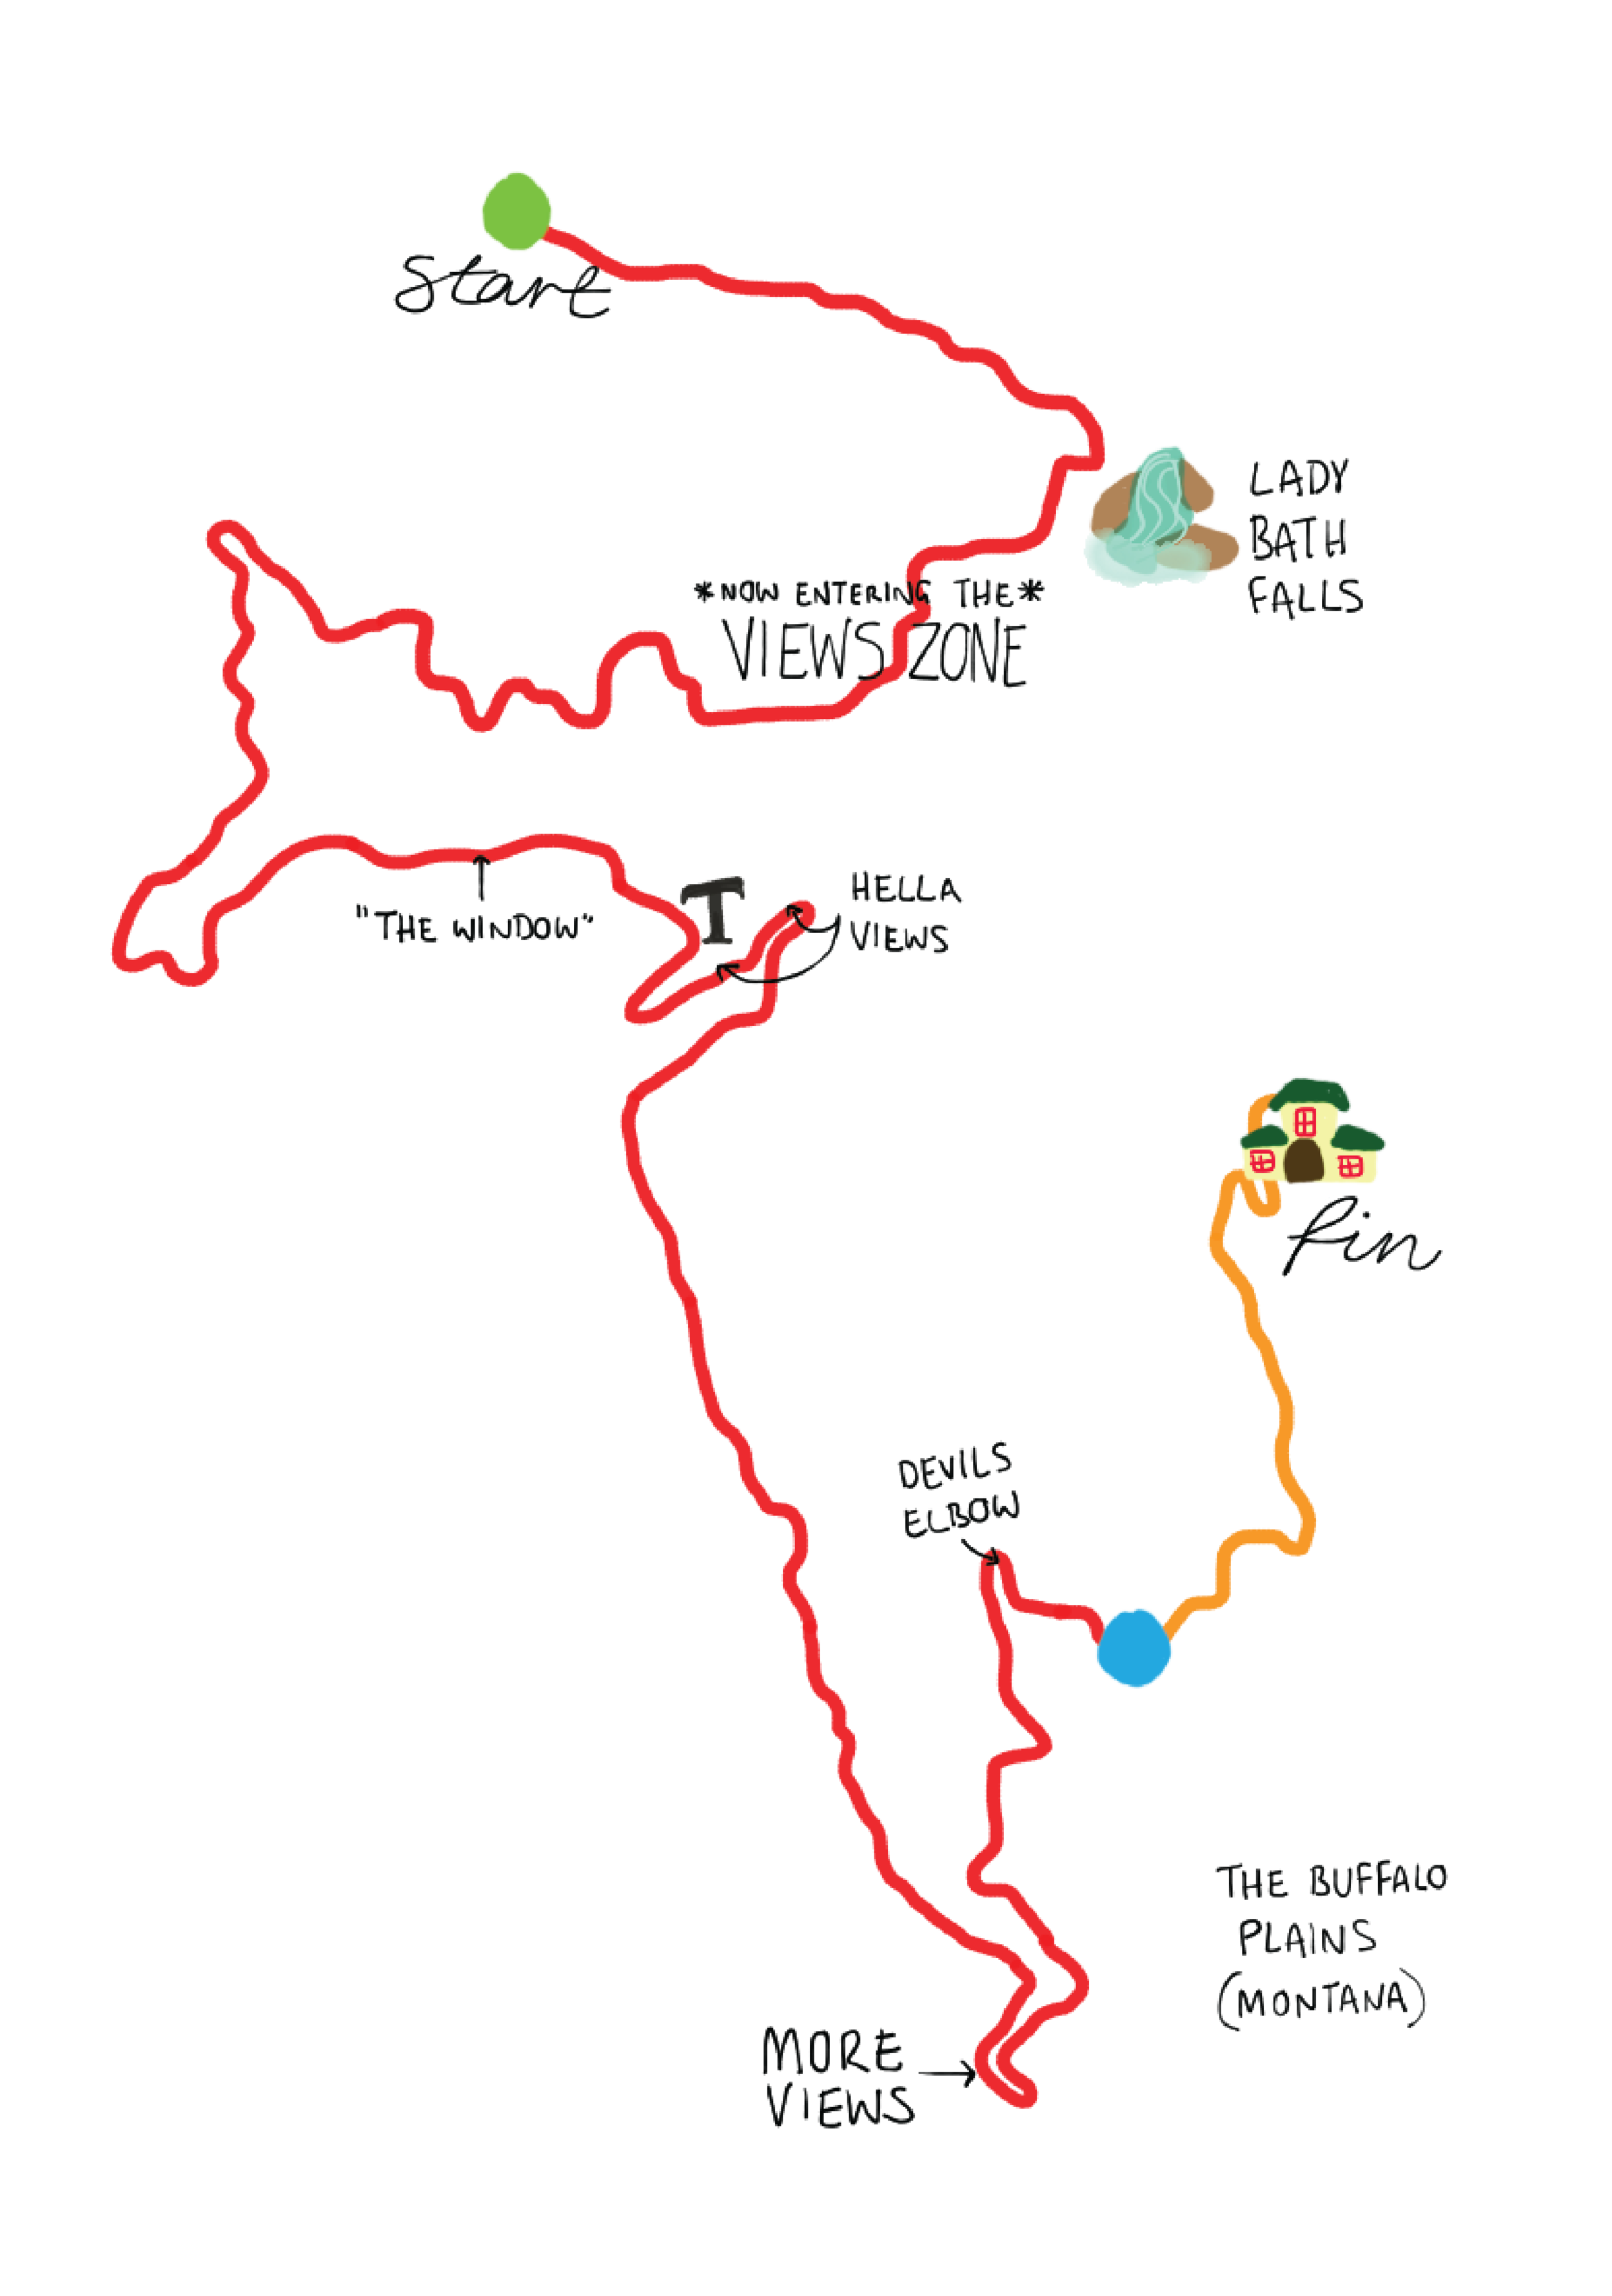 route-01.png